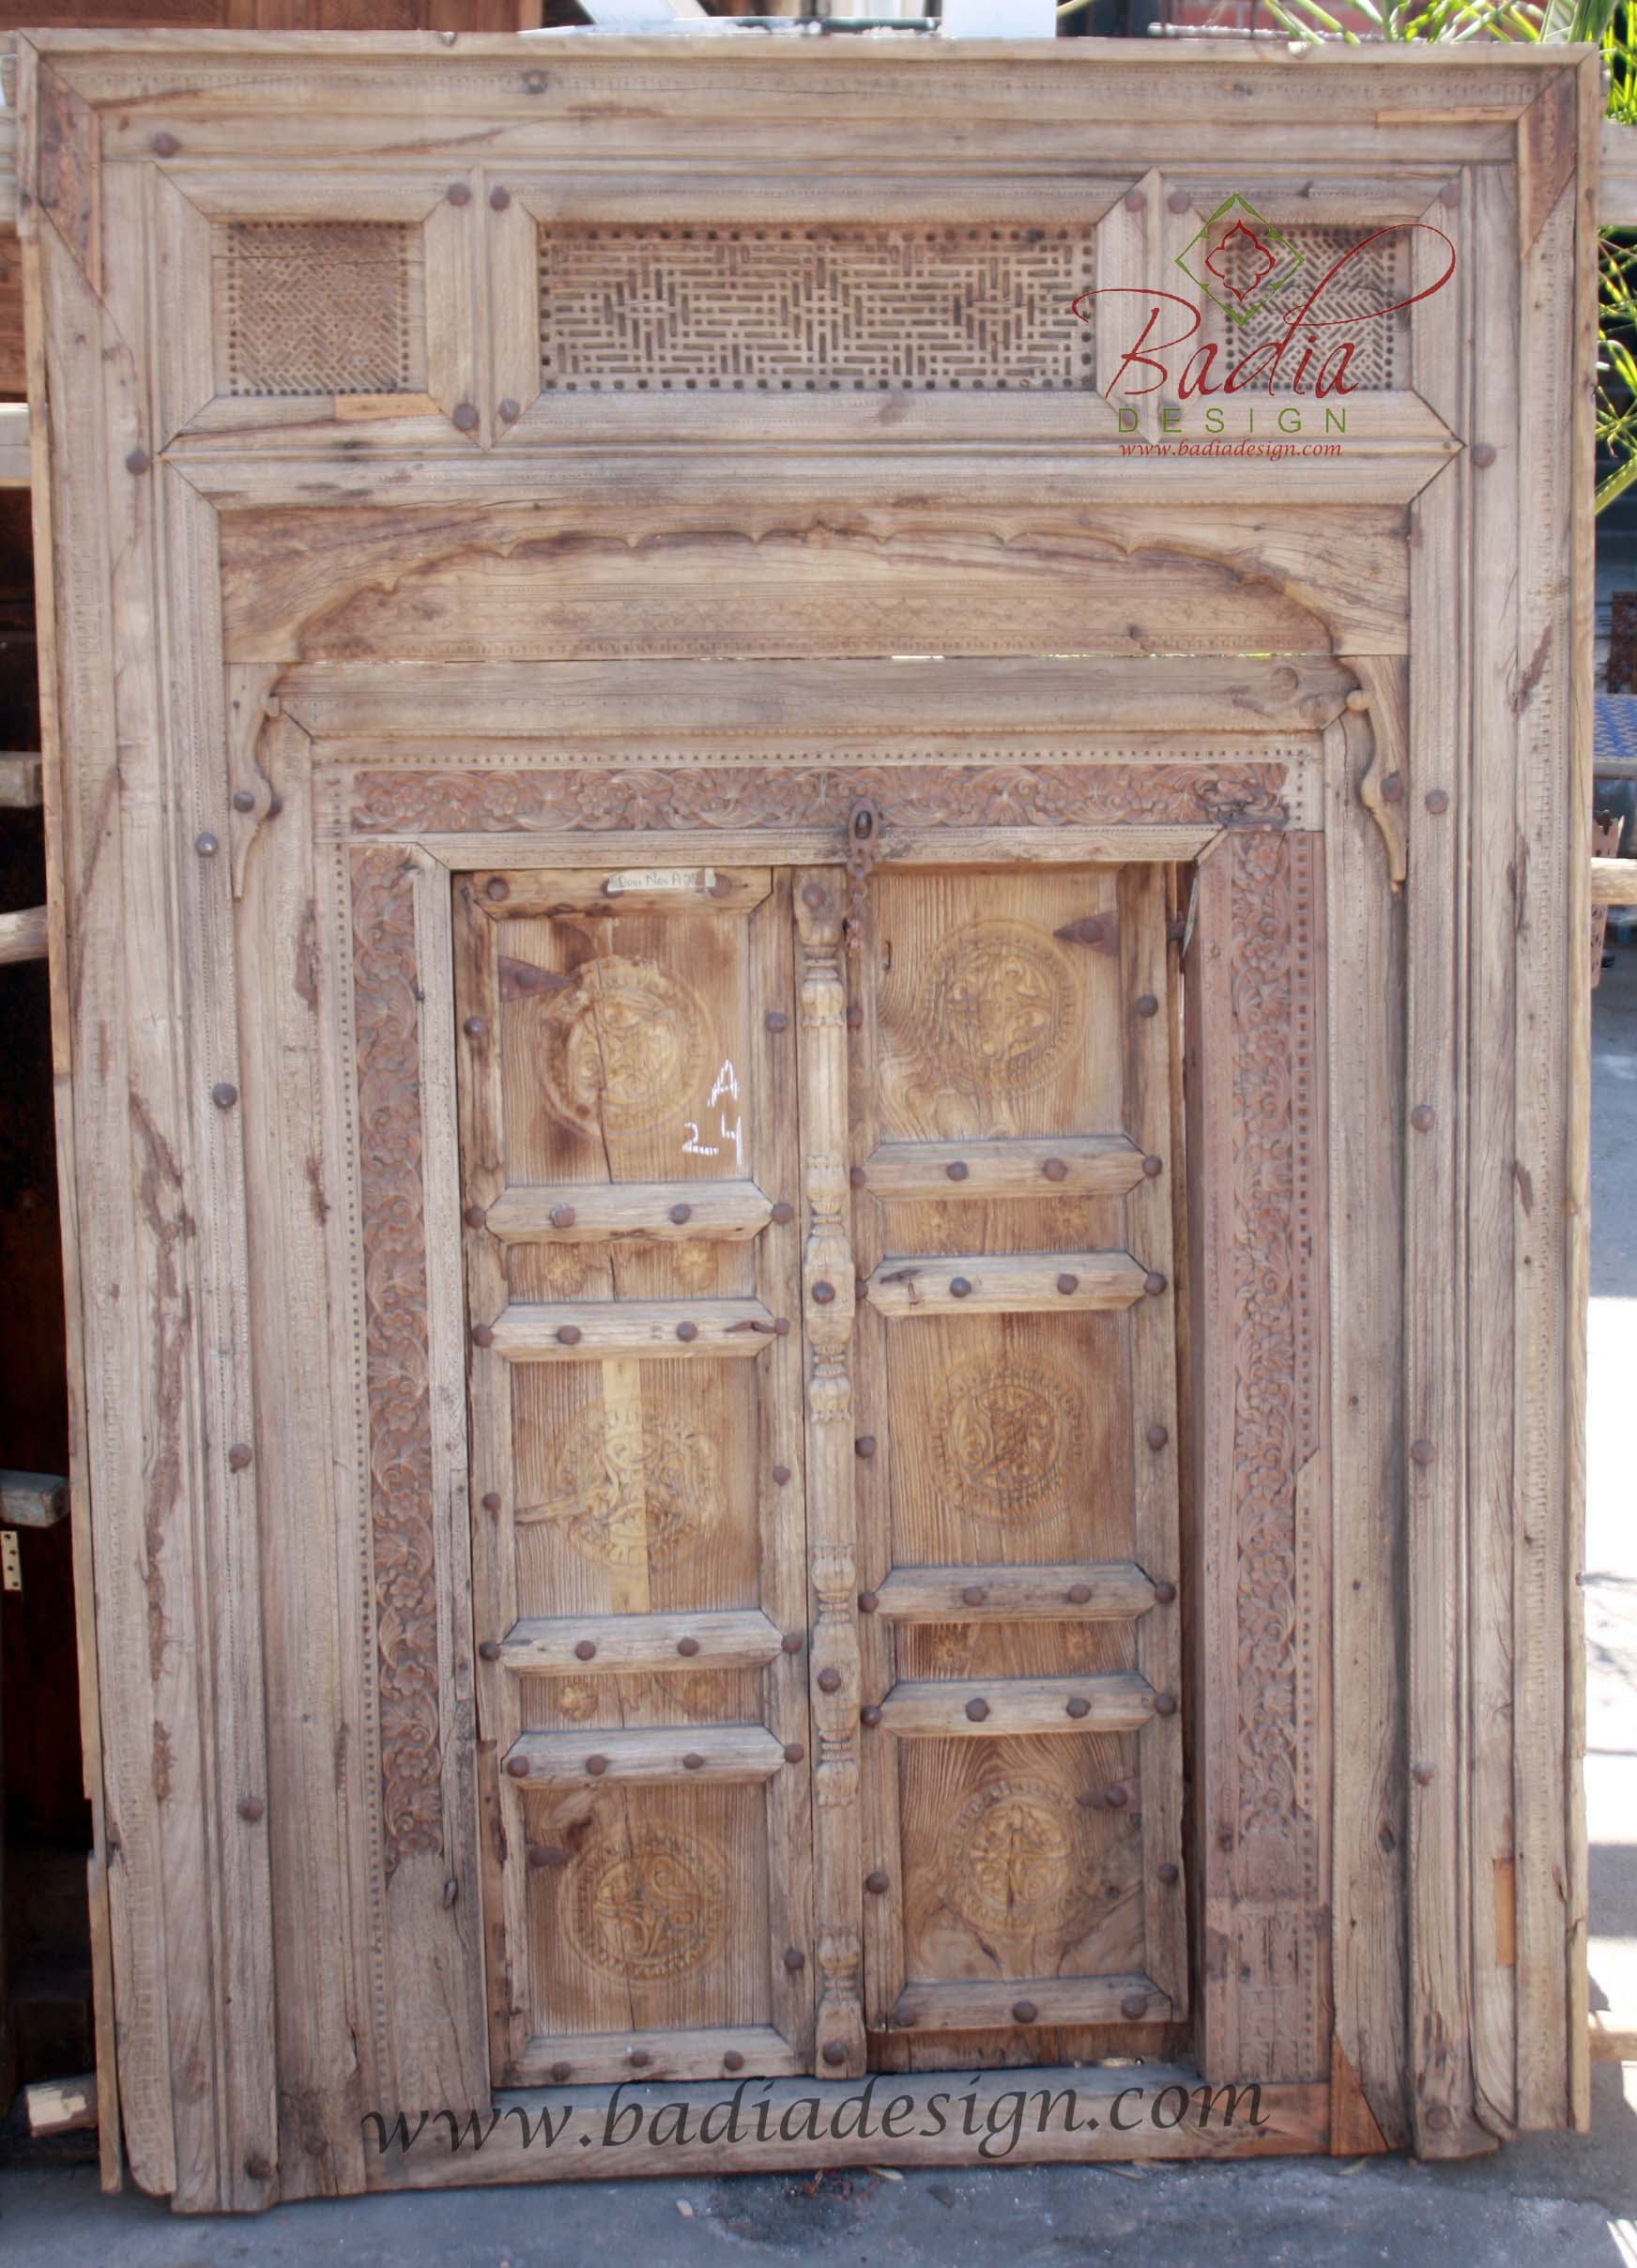 old-antique-wooden-door-cwd025.jpg